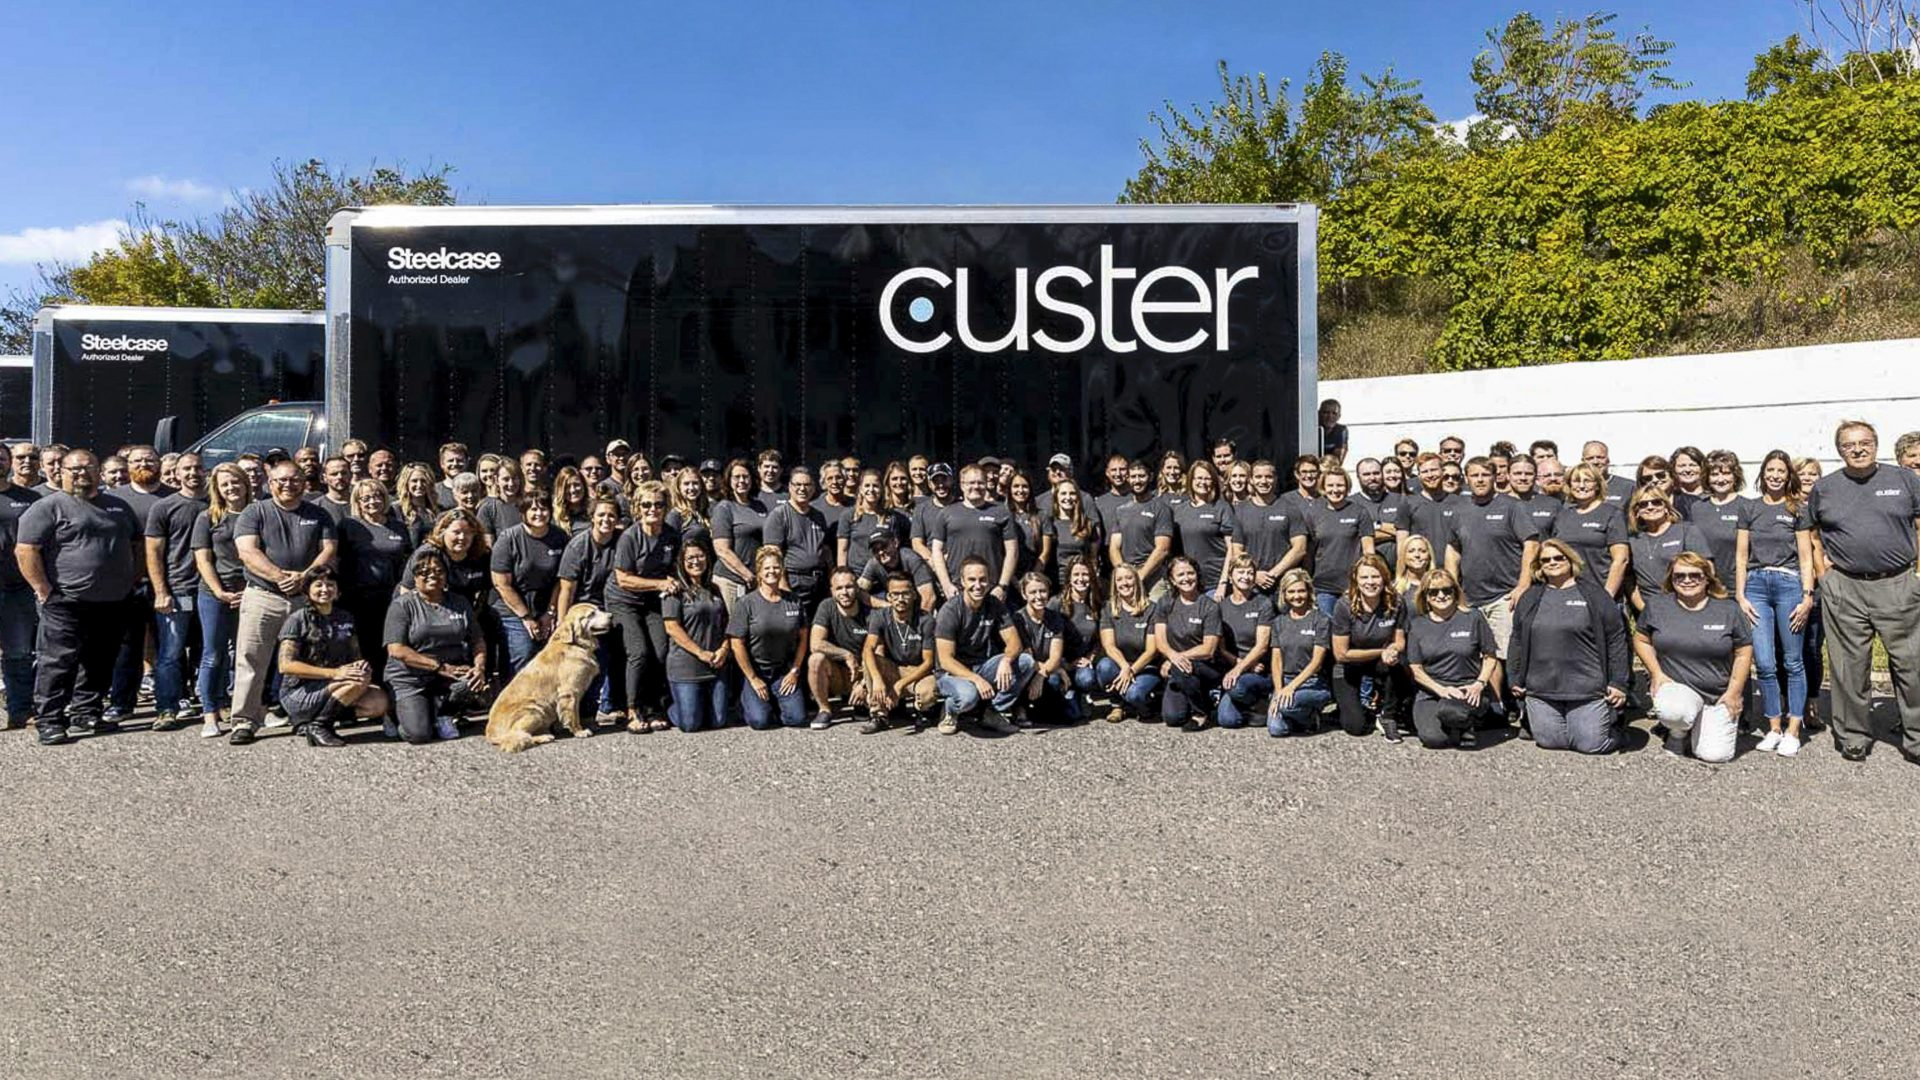 Our team, culture, and core values all reflect our belief that great spaces empower people to do their best work. Meet the faces of Custer below.